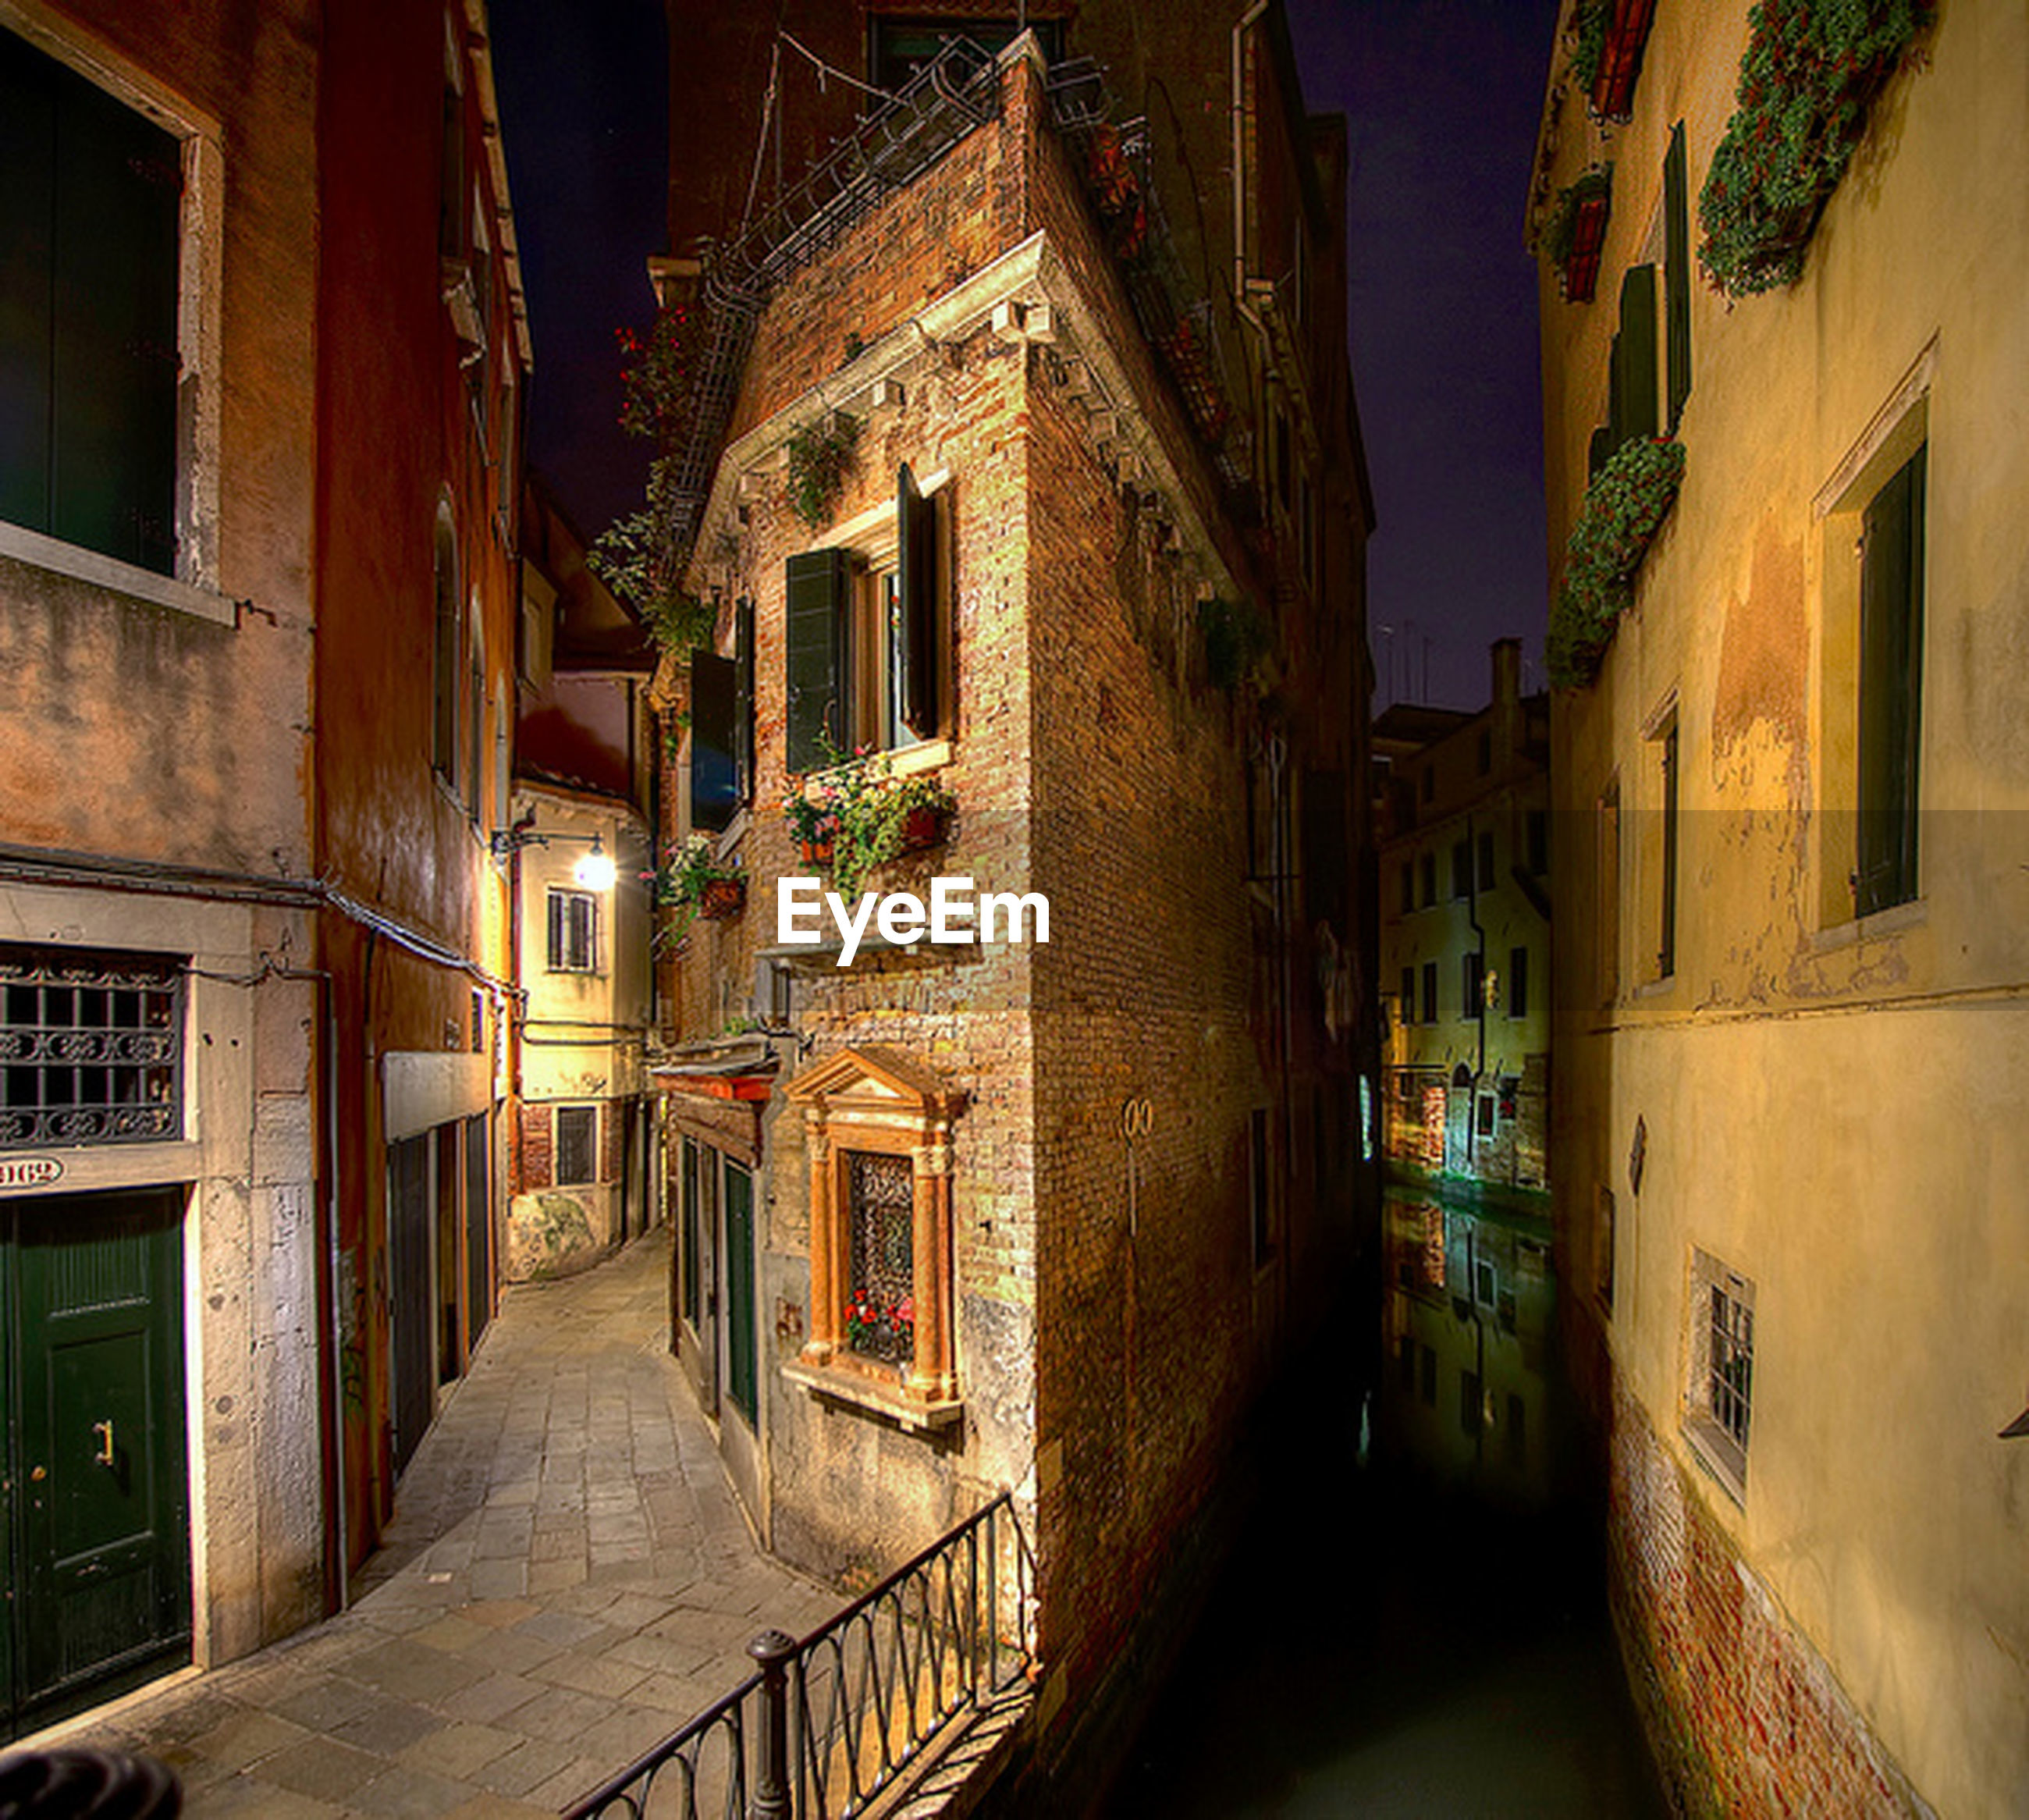 architecture, building exterior, built structure, residential building, residential structure, house, narrow, the way forward, alley, building, town, window, residential district, street, city, clear sky, balcony, night, no people, outdoors